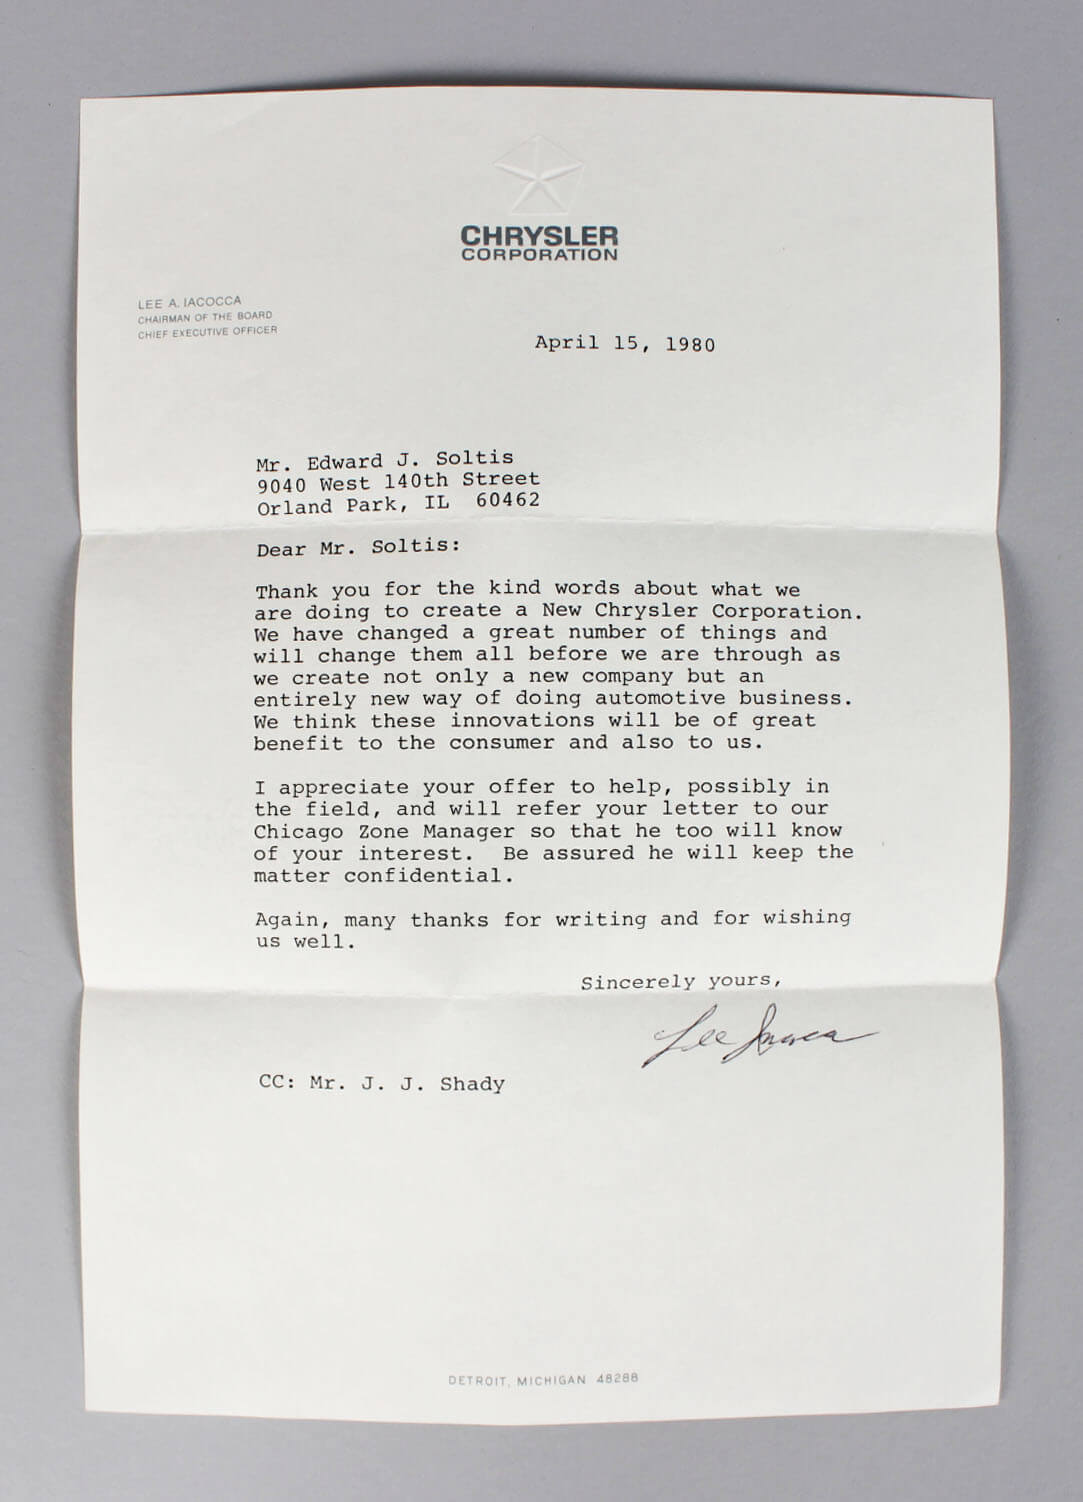 Signed Letter (TLS) From Lee Iacocca on Chrysler Stationary From Lee A Iacocca on Chrysler Stationary